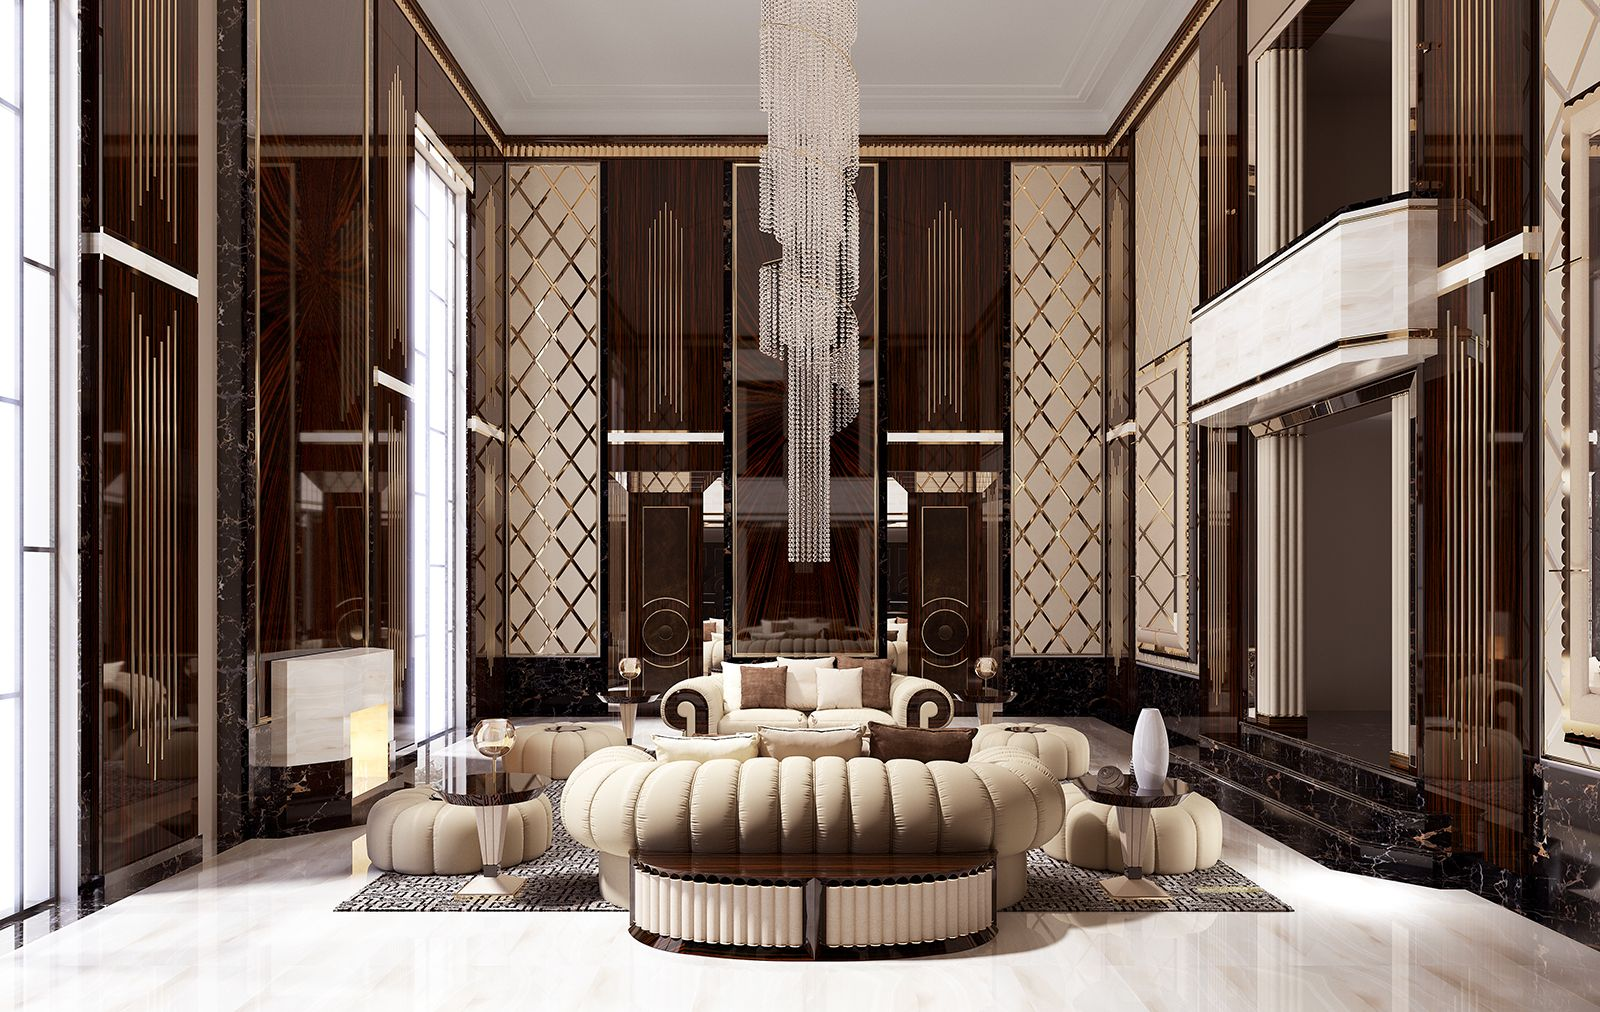 Italian living room interiors - Find This Pin And More On The Art Of Hospitality Contemporary Orion Collection Www It Luxury Italian Living Room Furniture